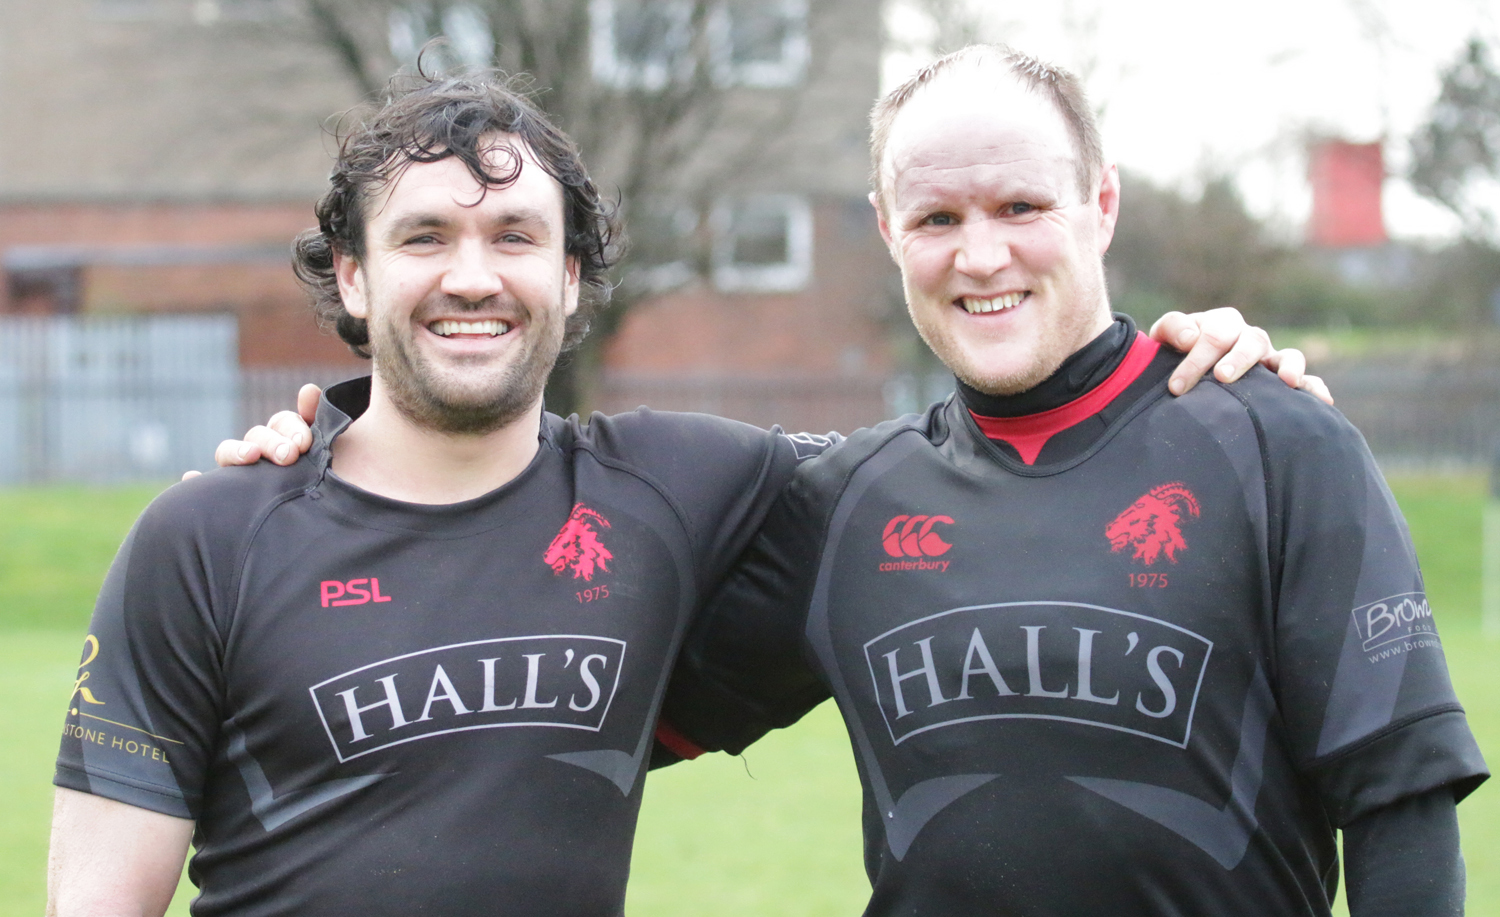 Alan Warnock and Conor Lavery both became dads for the first time last week - and both scored tries on Saturday. Photo: Nigel Pacey